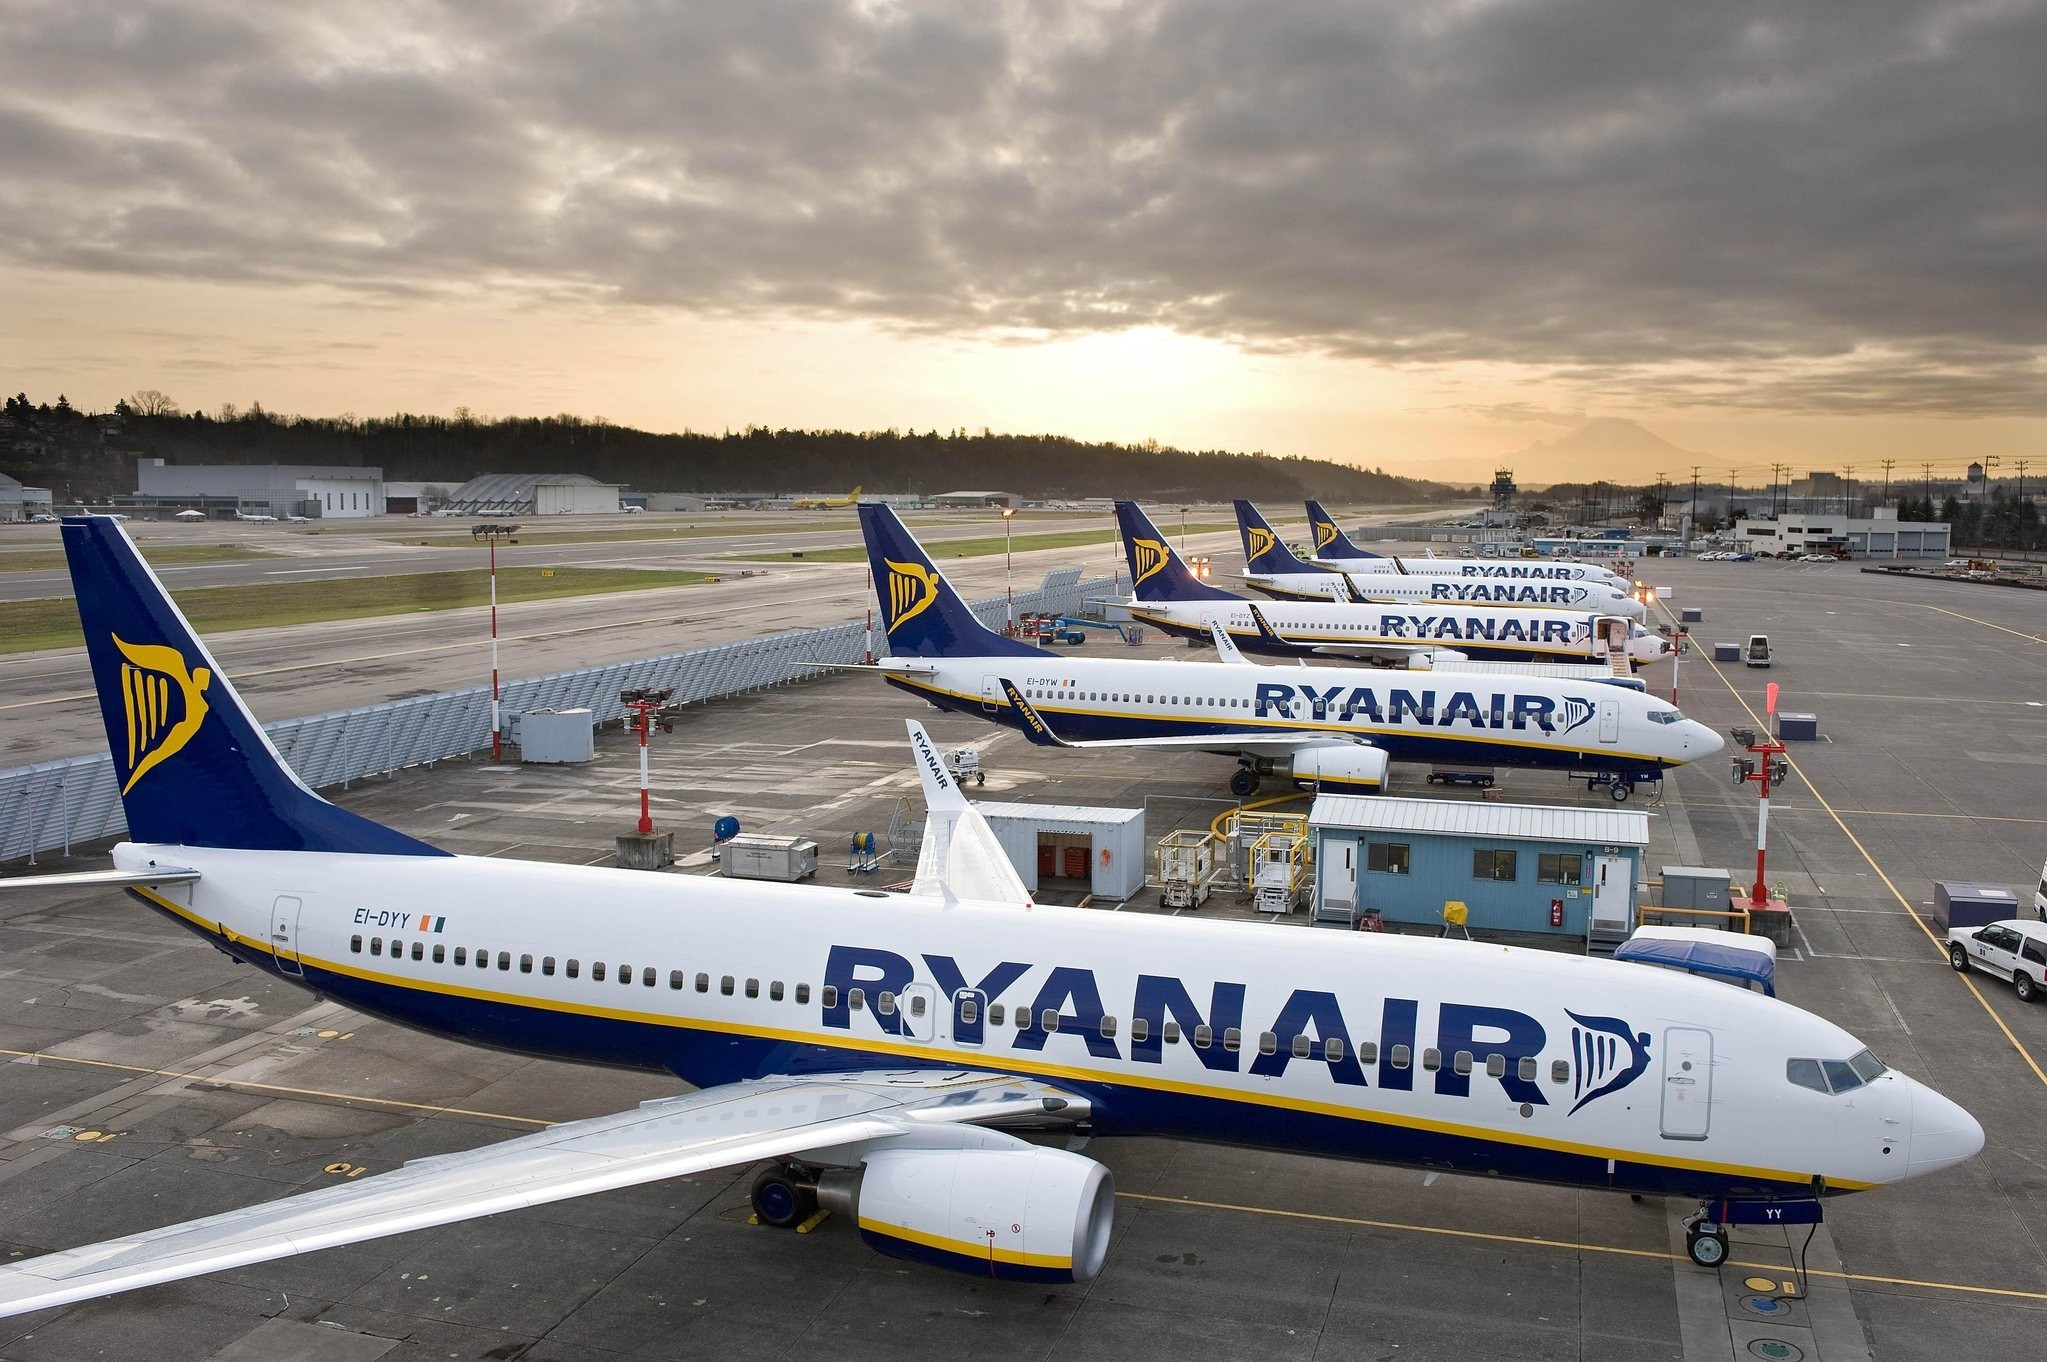 Strike action at embattled Ryanair intensified on Dec. 12, 2017, with German pilots the latest to plan possible walkouts over conditions, following similar moves by staff based around Europe. (AFP Photo)